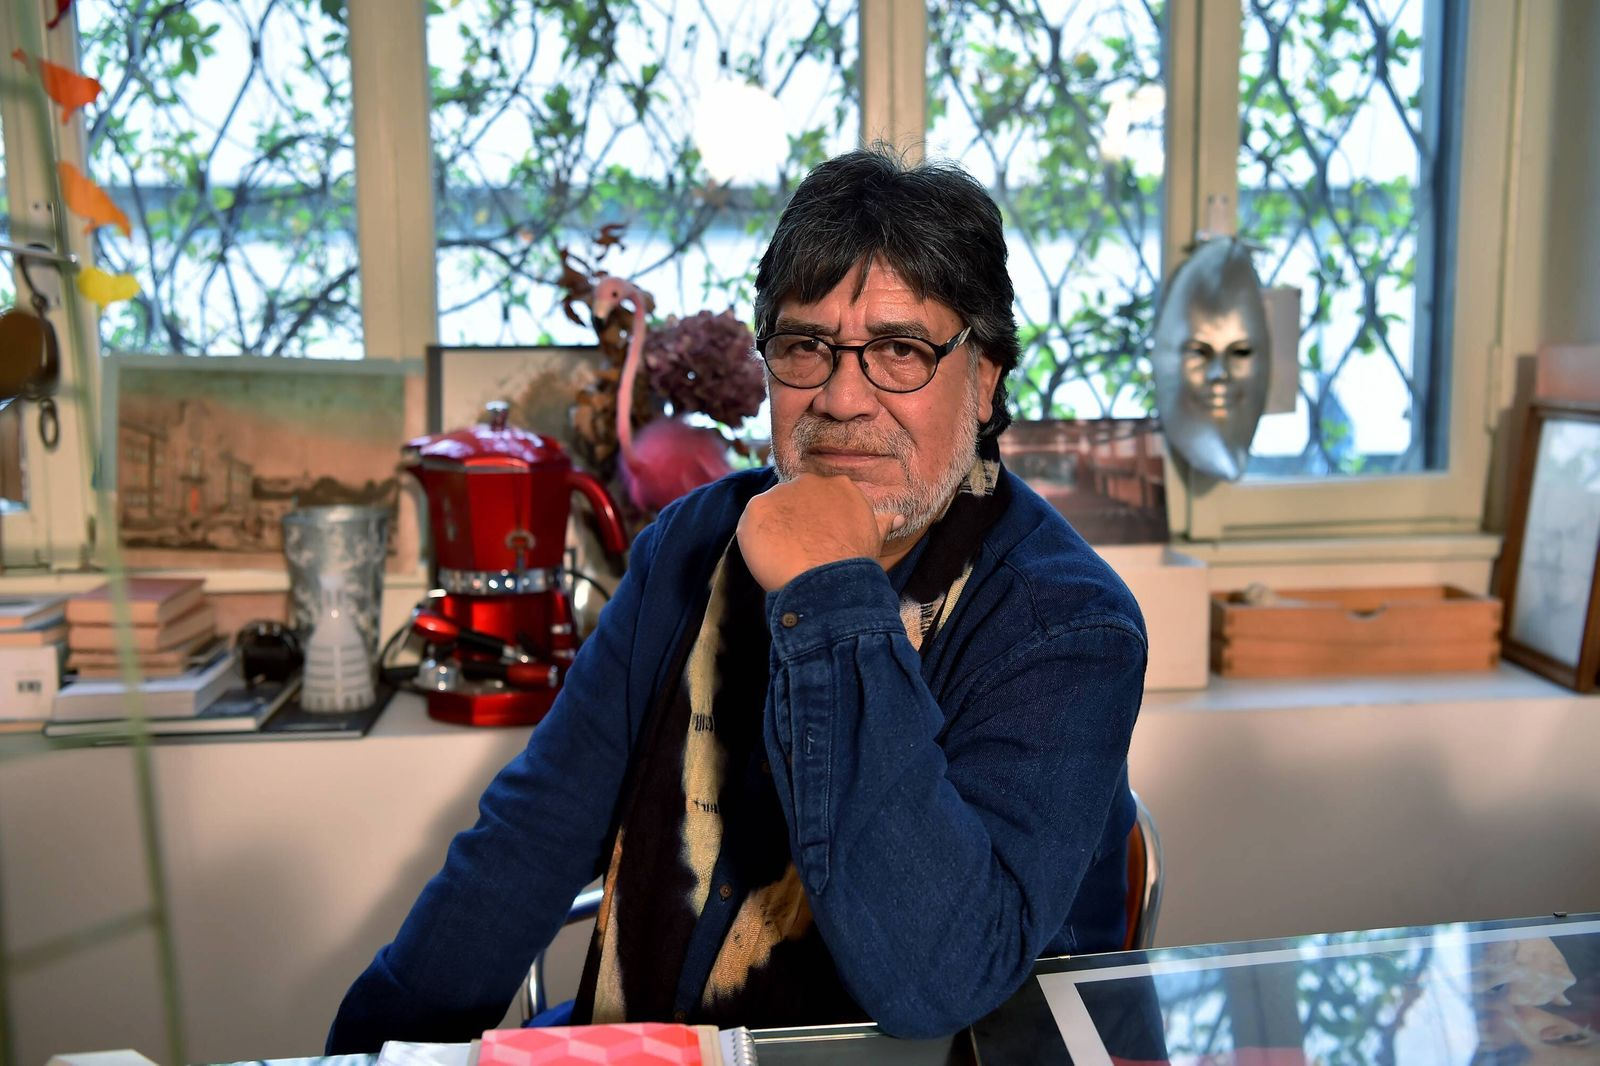 Presentation of the book Storie Ribelli by Luis Sepulveda at the Franco Parenti theater, in the photo Luis Sepulveda (Du